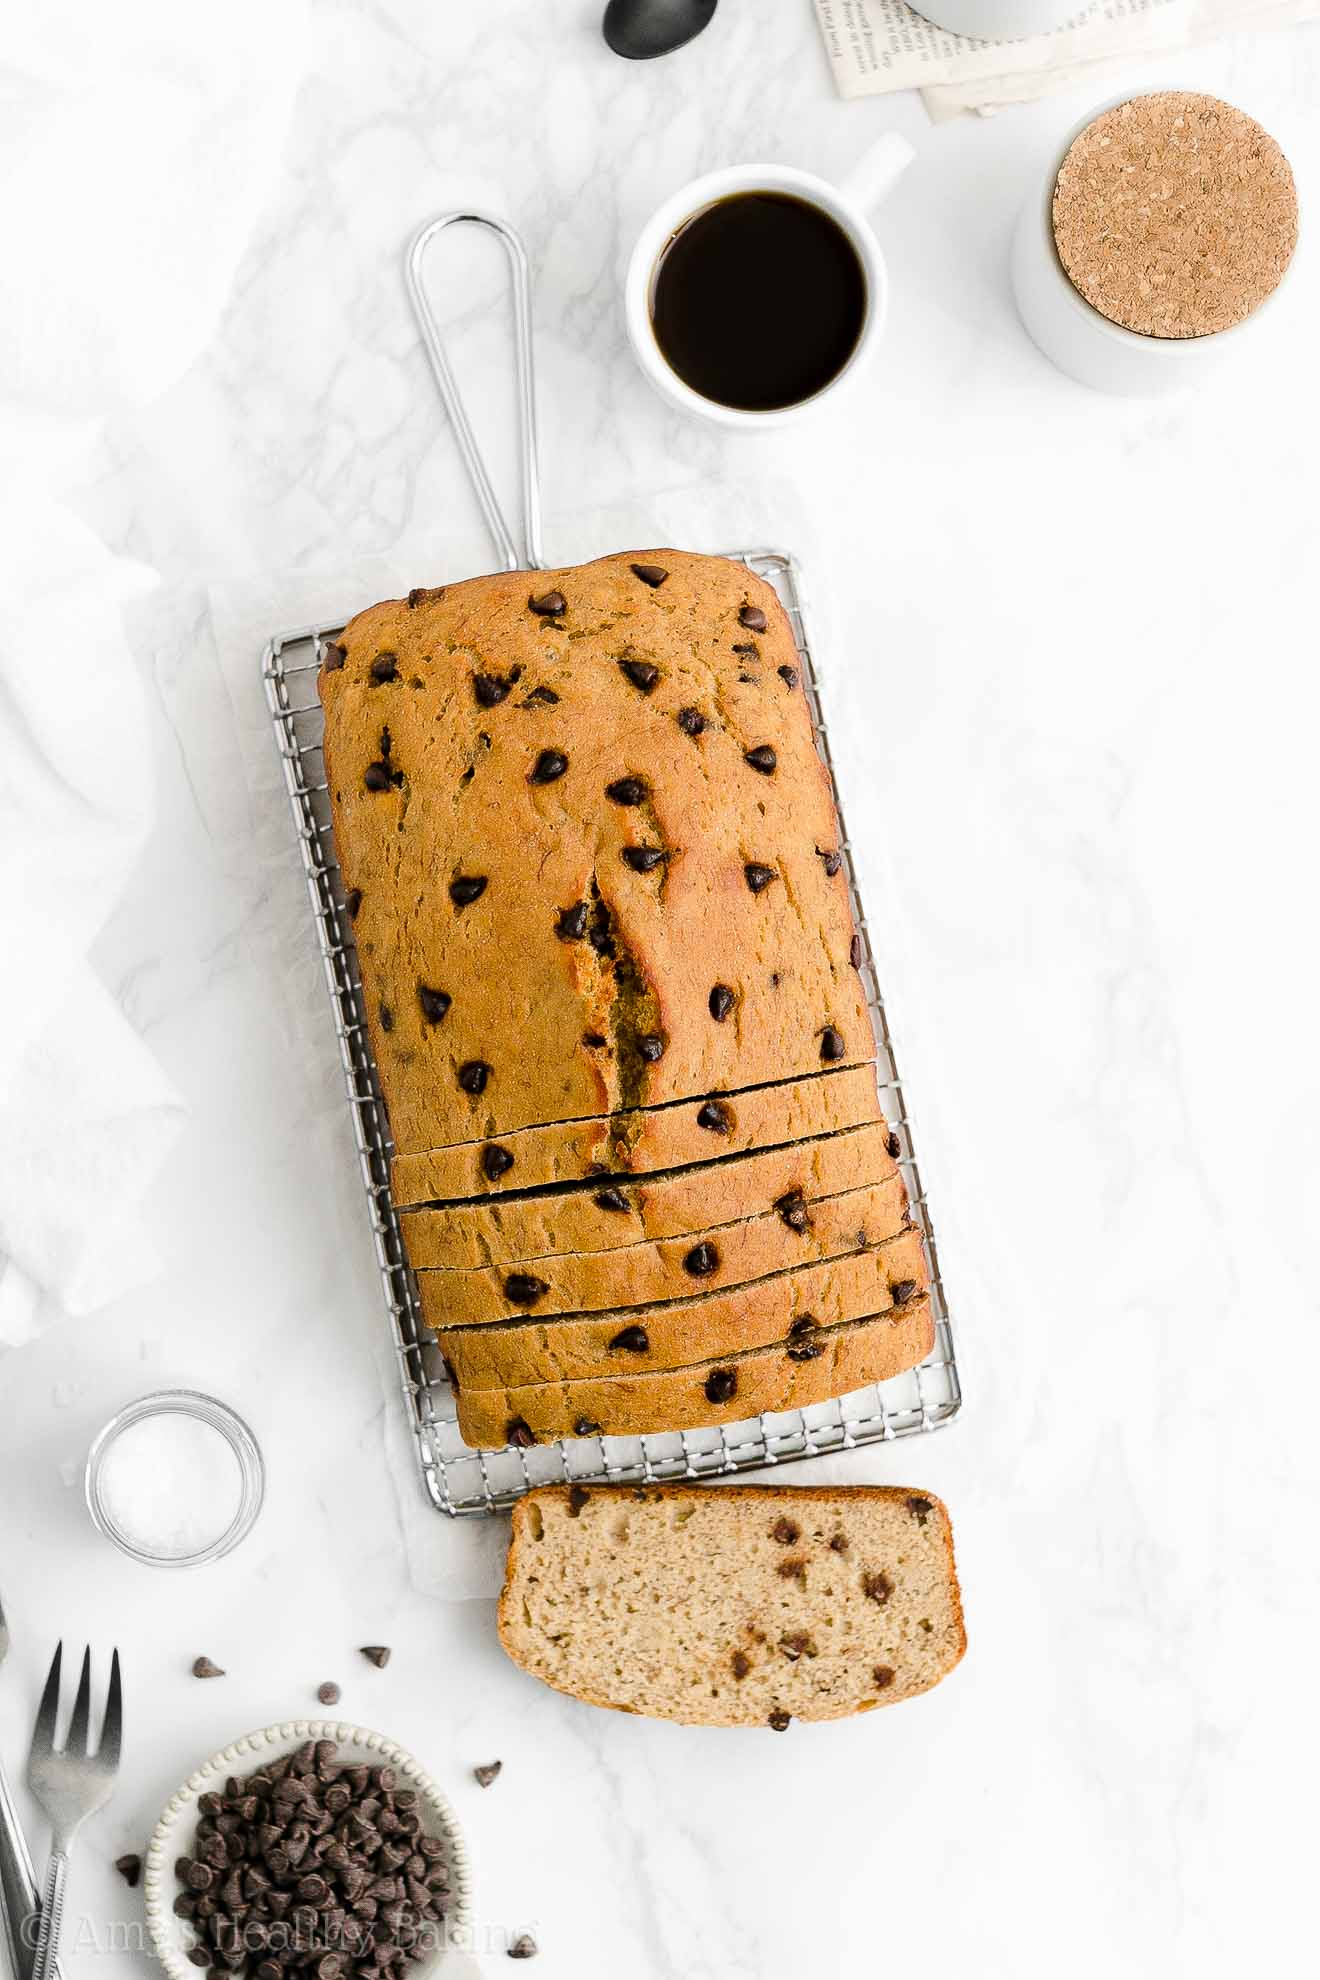 Best Easy Healthy Gluten Free Low Fat One-Bowl Chocolate Chip Banana Bread